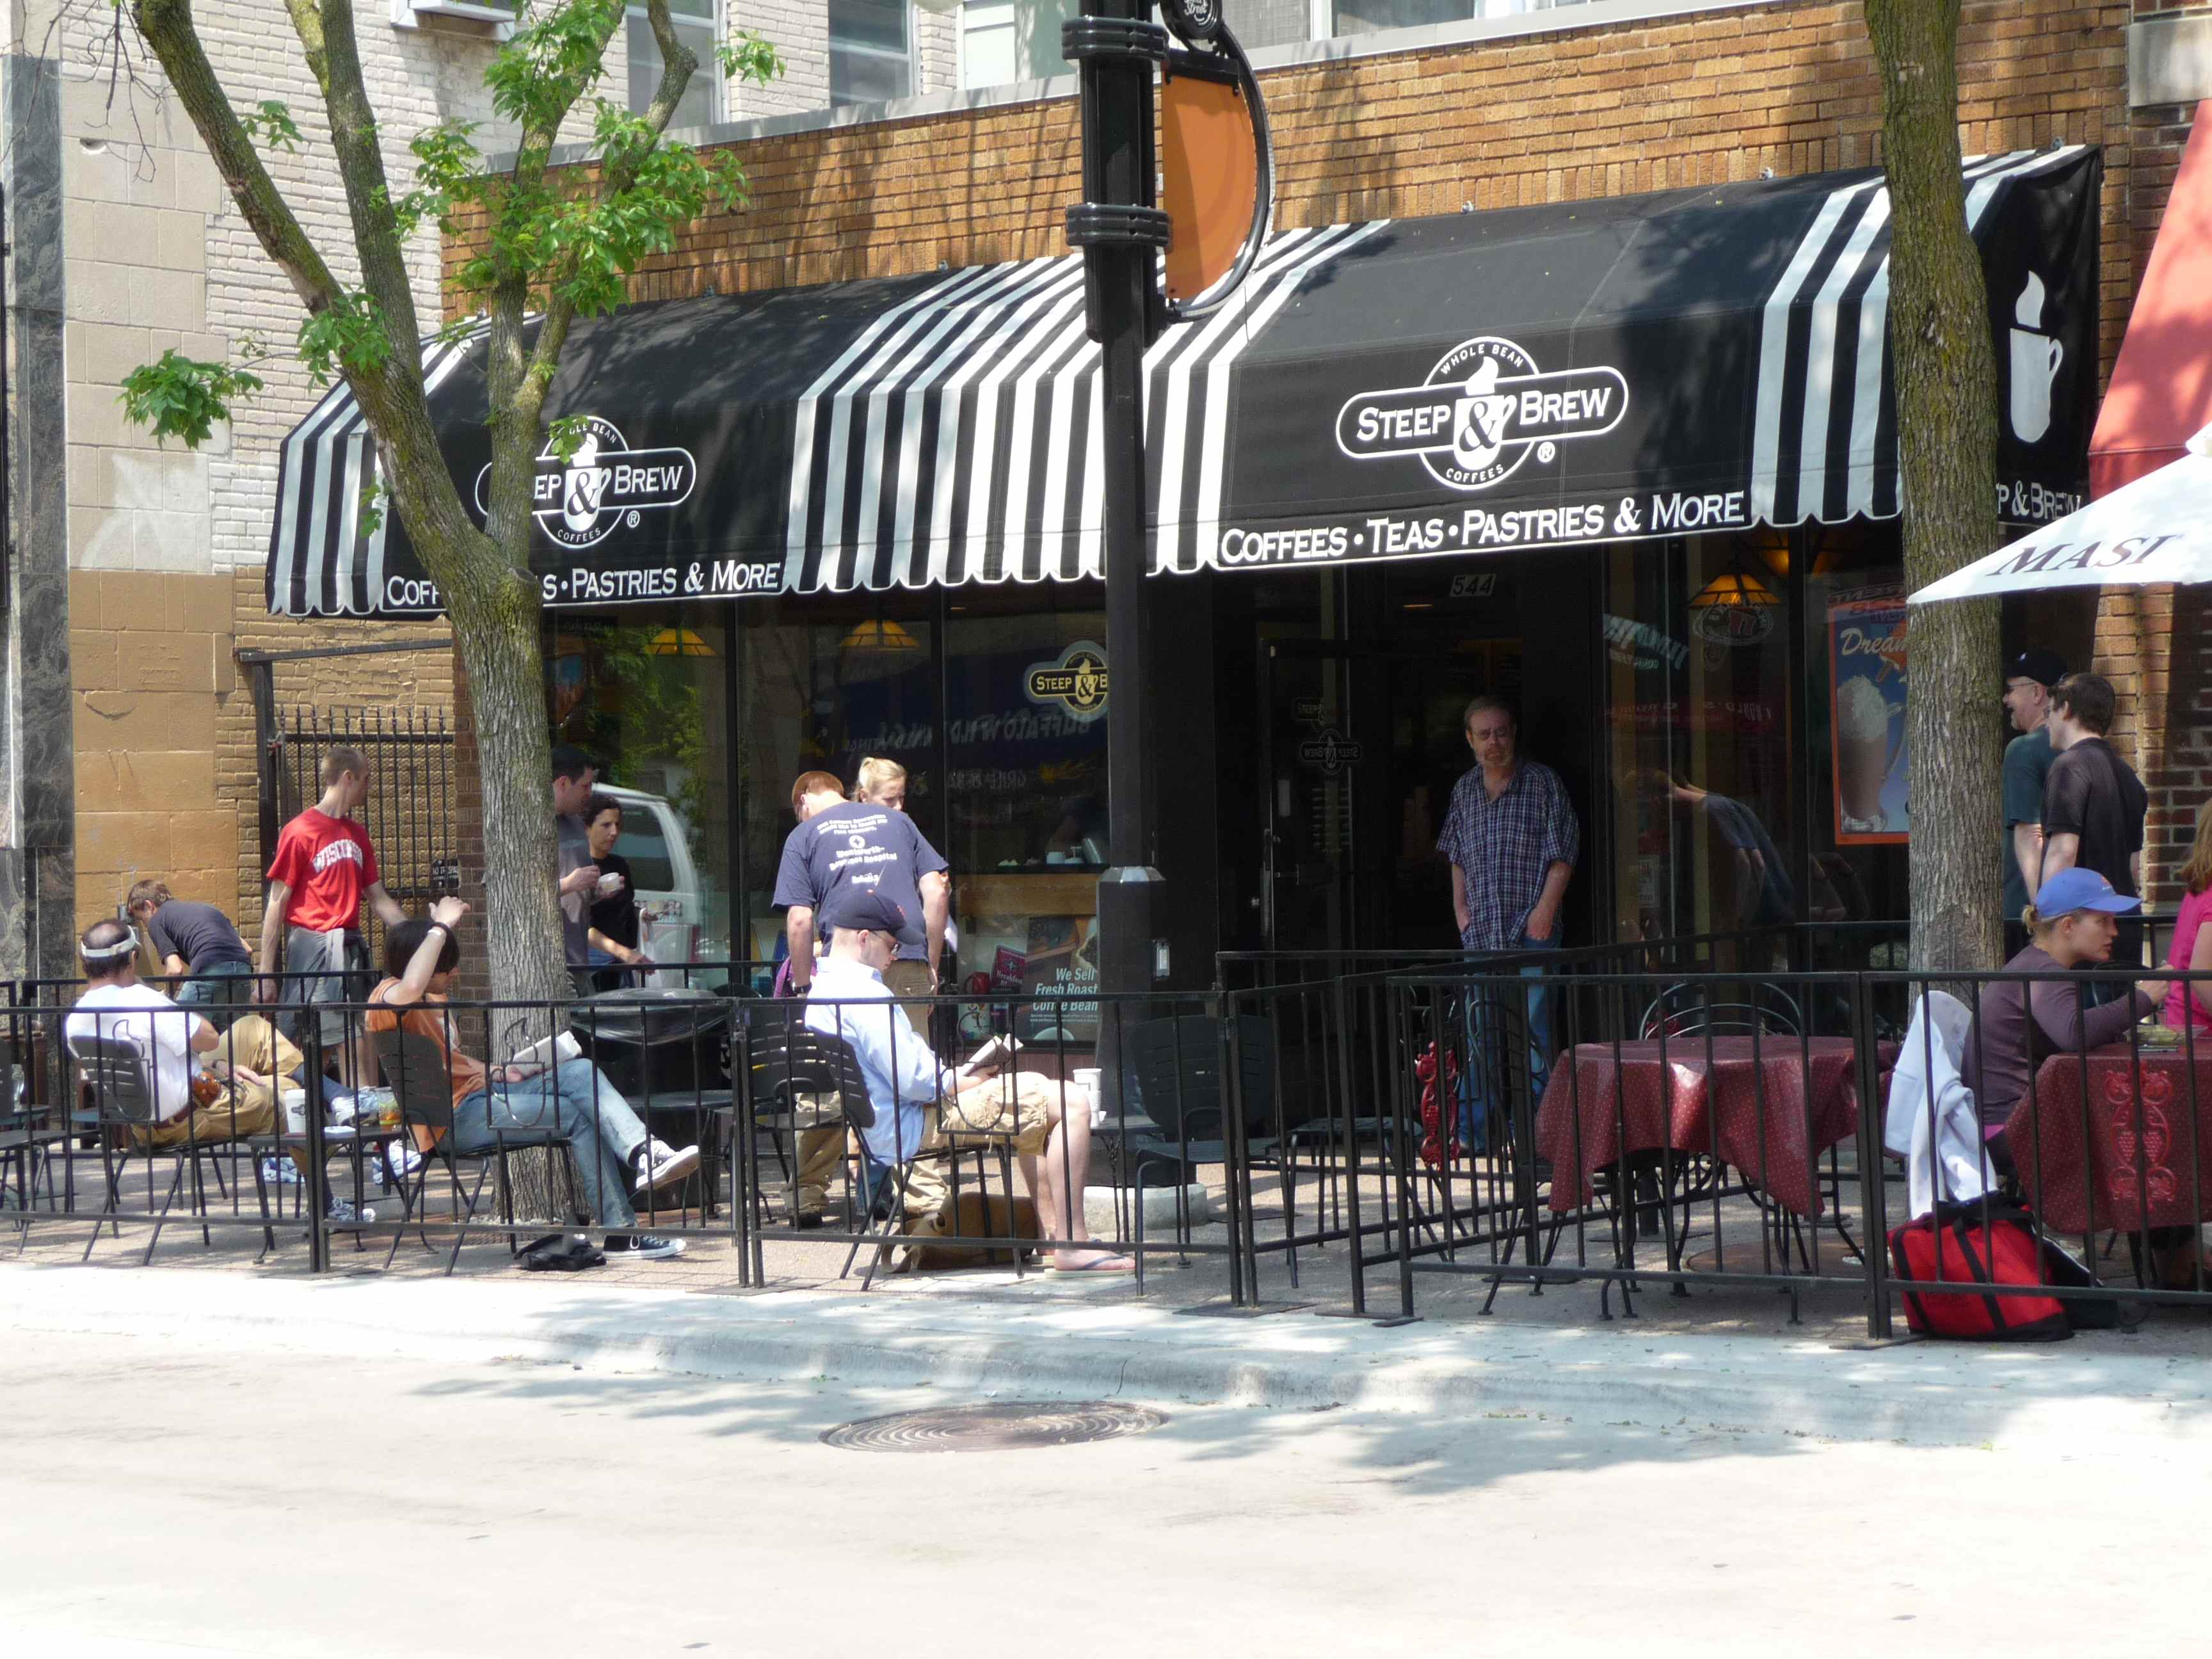 As with most coffee shops on State, Steep & Brew has outdoor seating